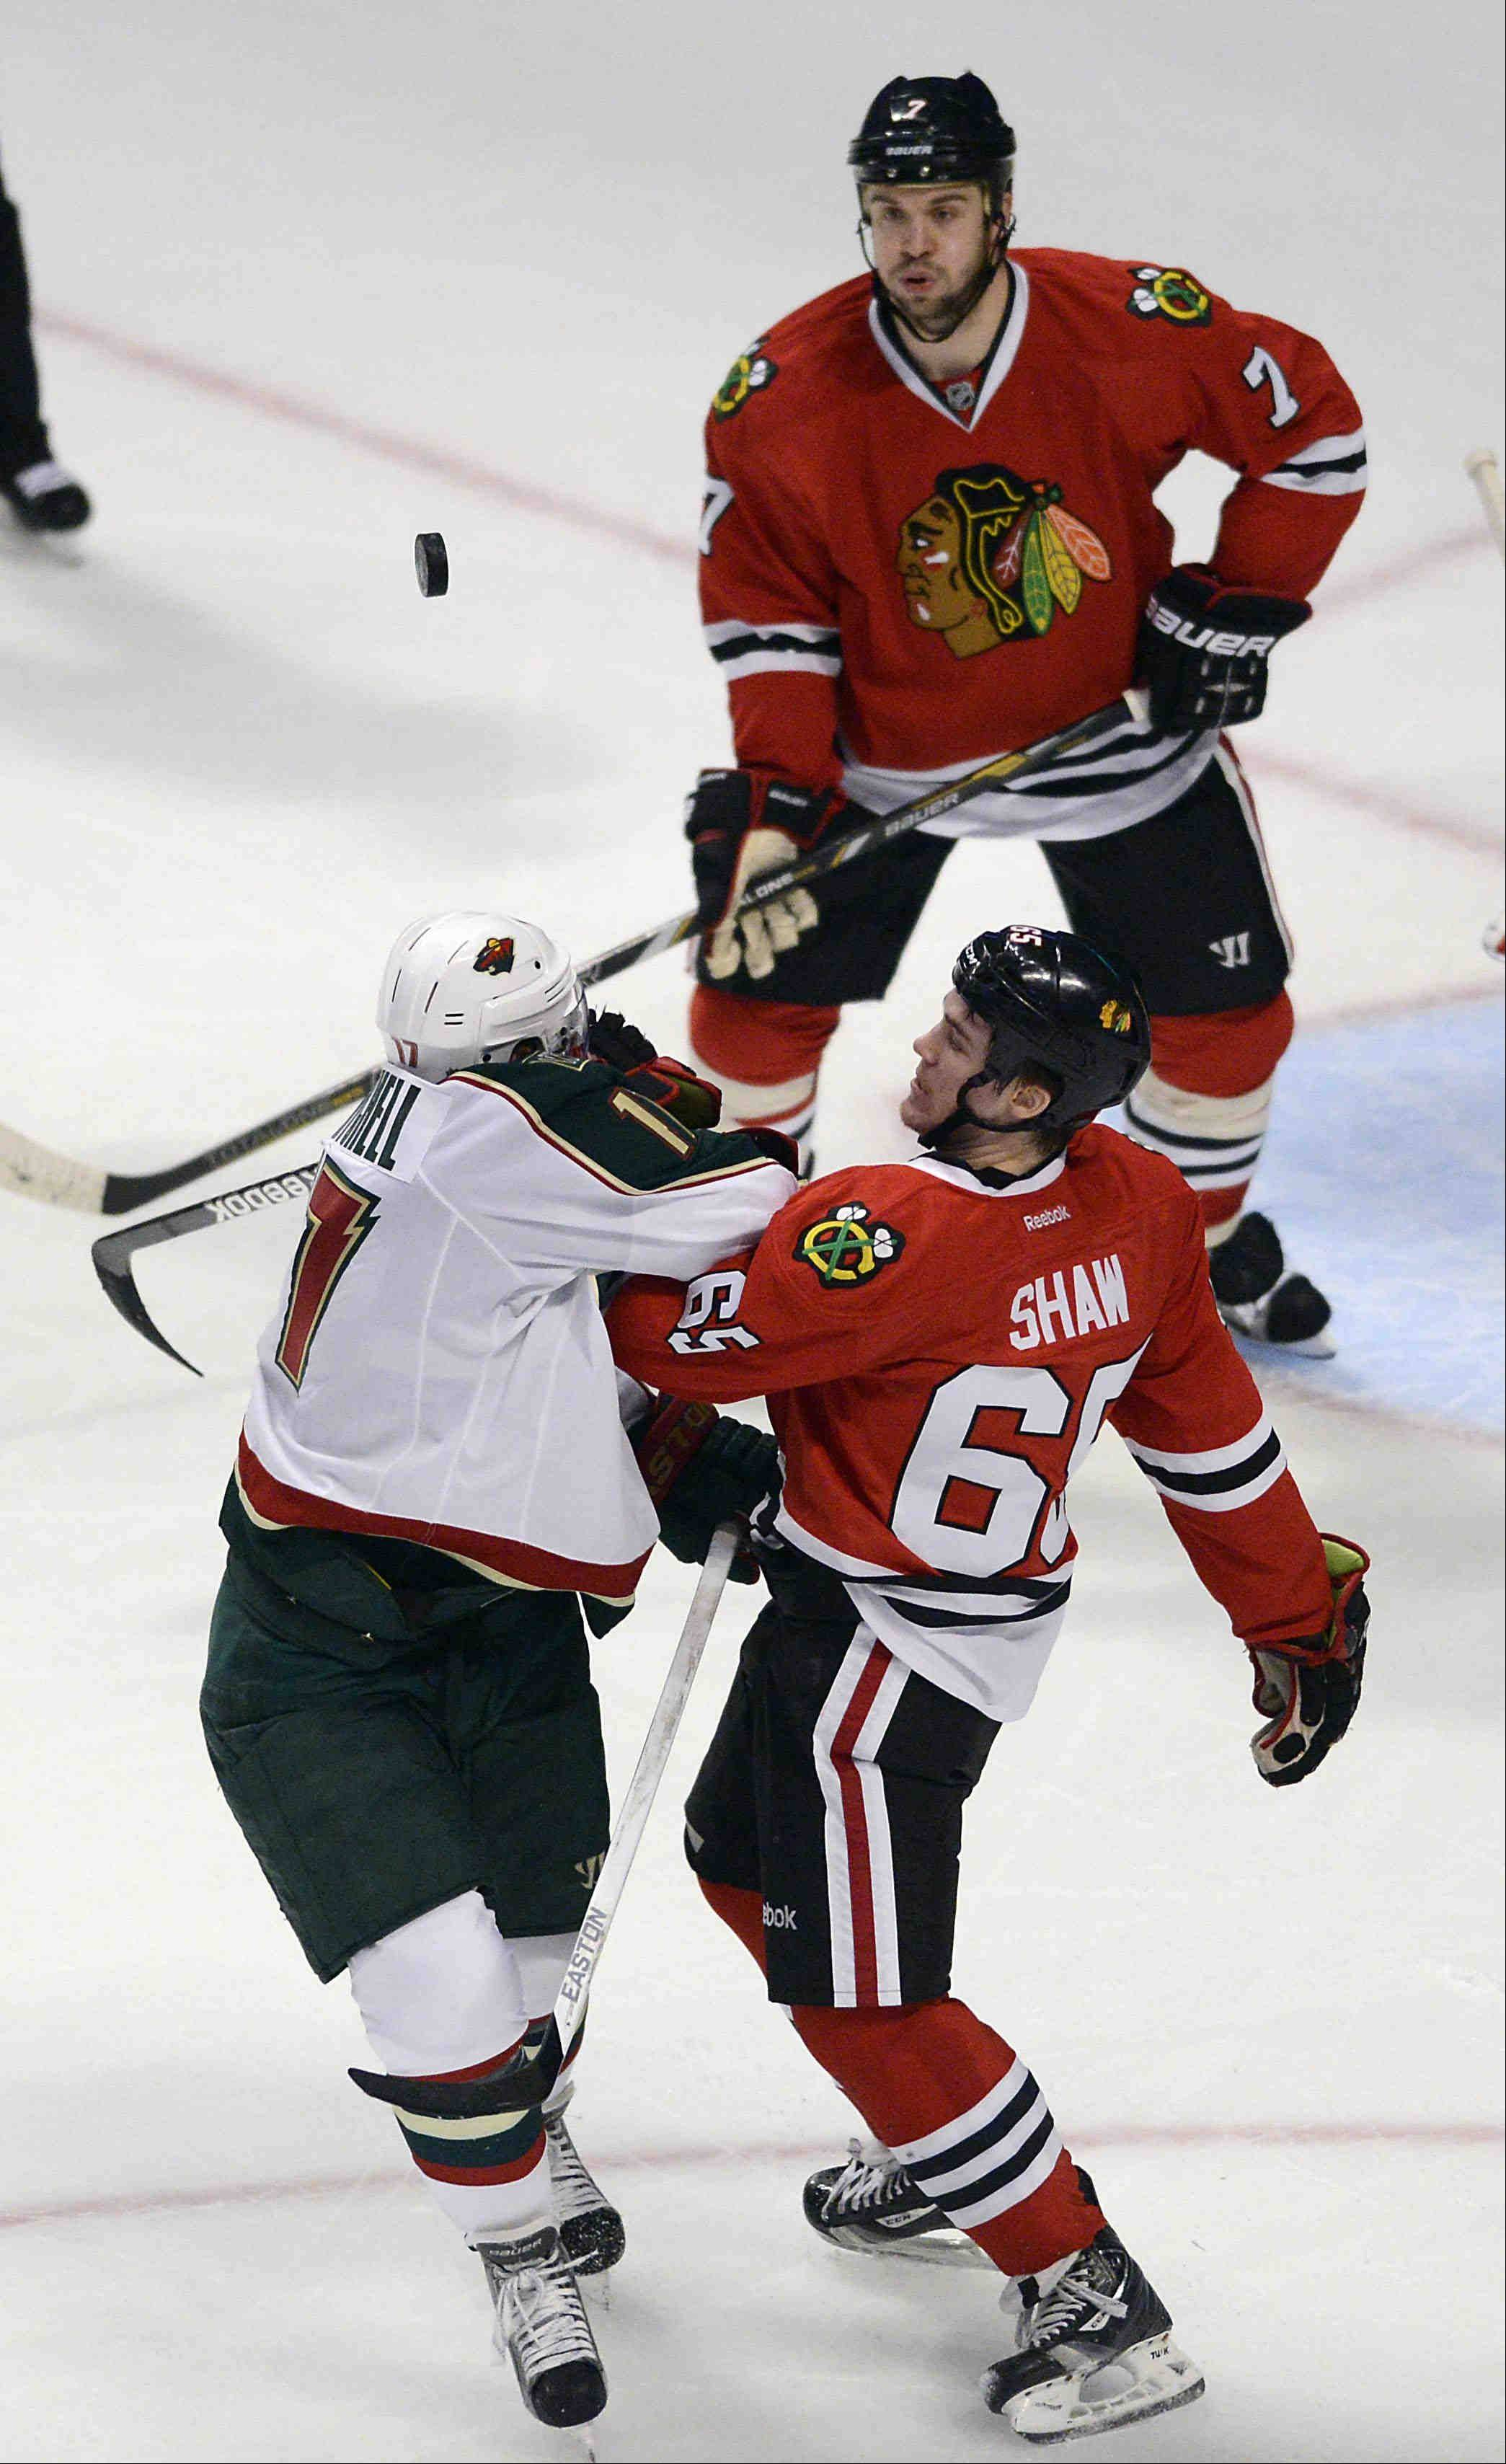 Rivalry between Hawks, Wild seems primed to ignite